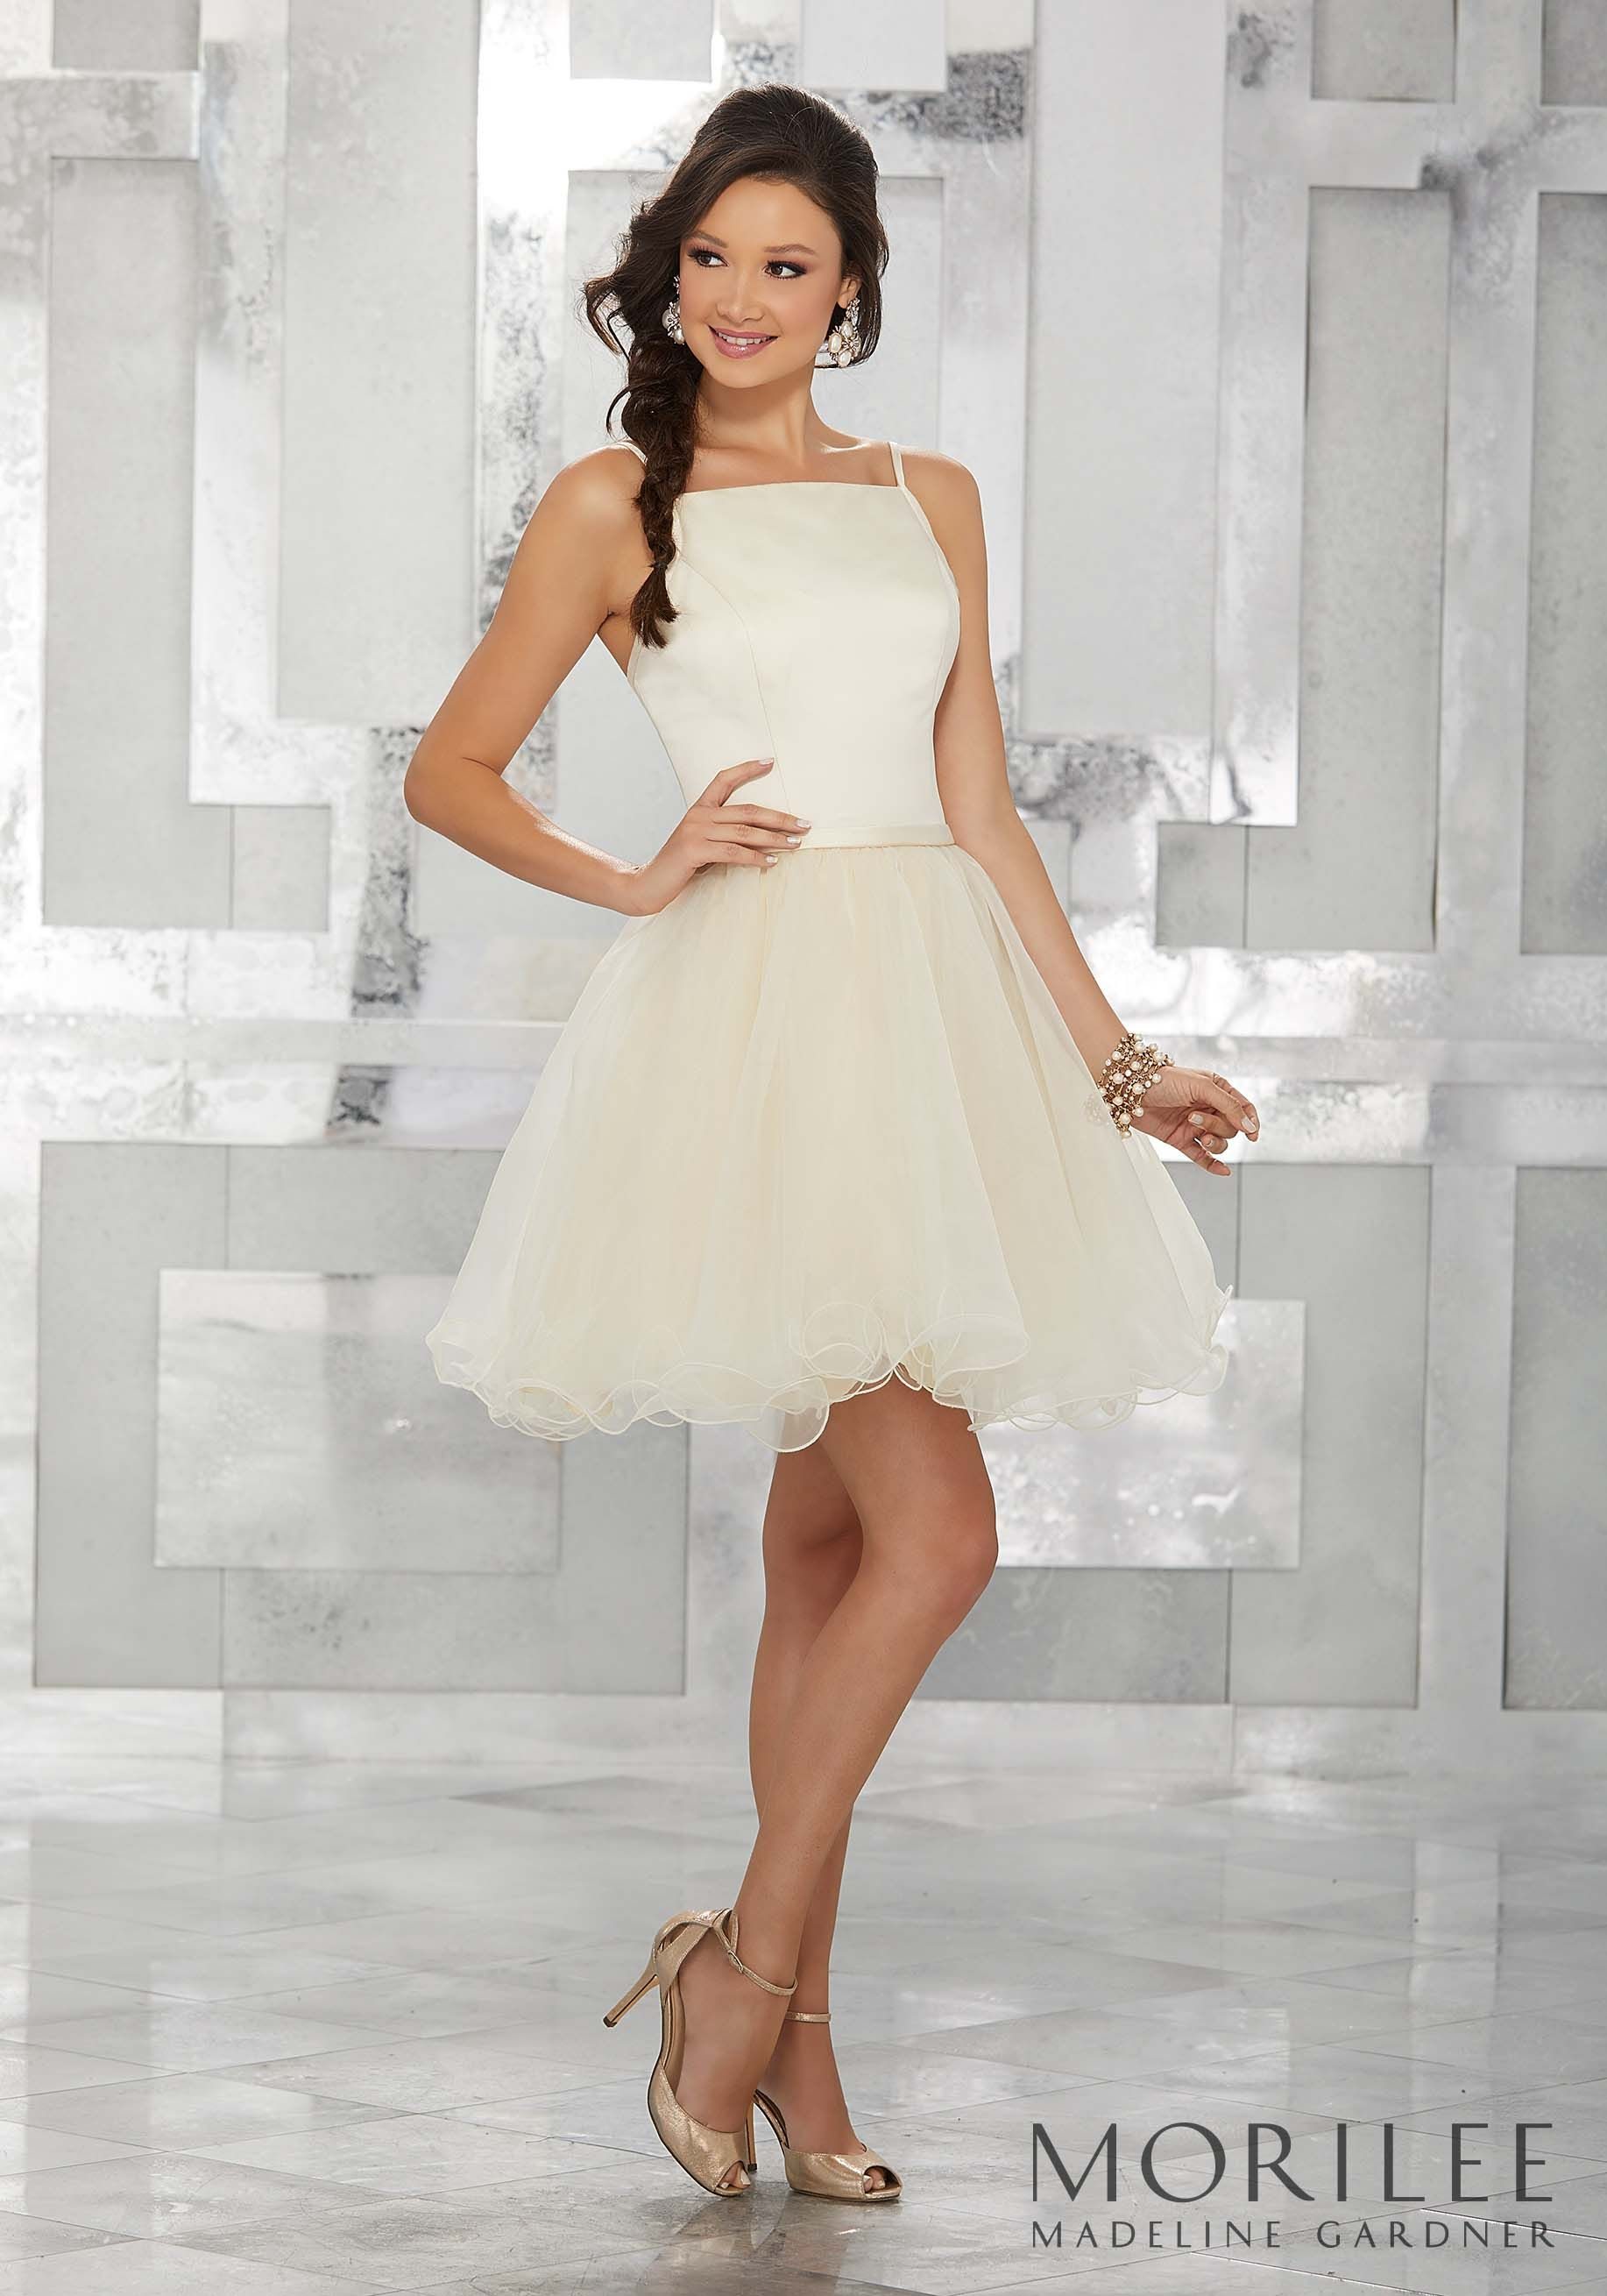 8fa704b55191 Champagne Satin and Organza Party Dress with Square Neckline. Colors  Available: Champagne, Lemonade, White, Blush, Lilac, Light Aqua, Pink,  Light Coral, ...